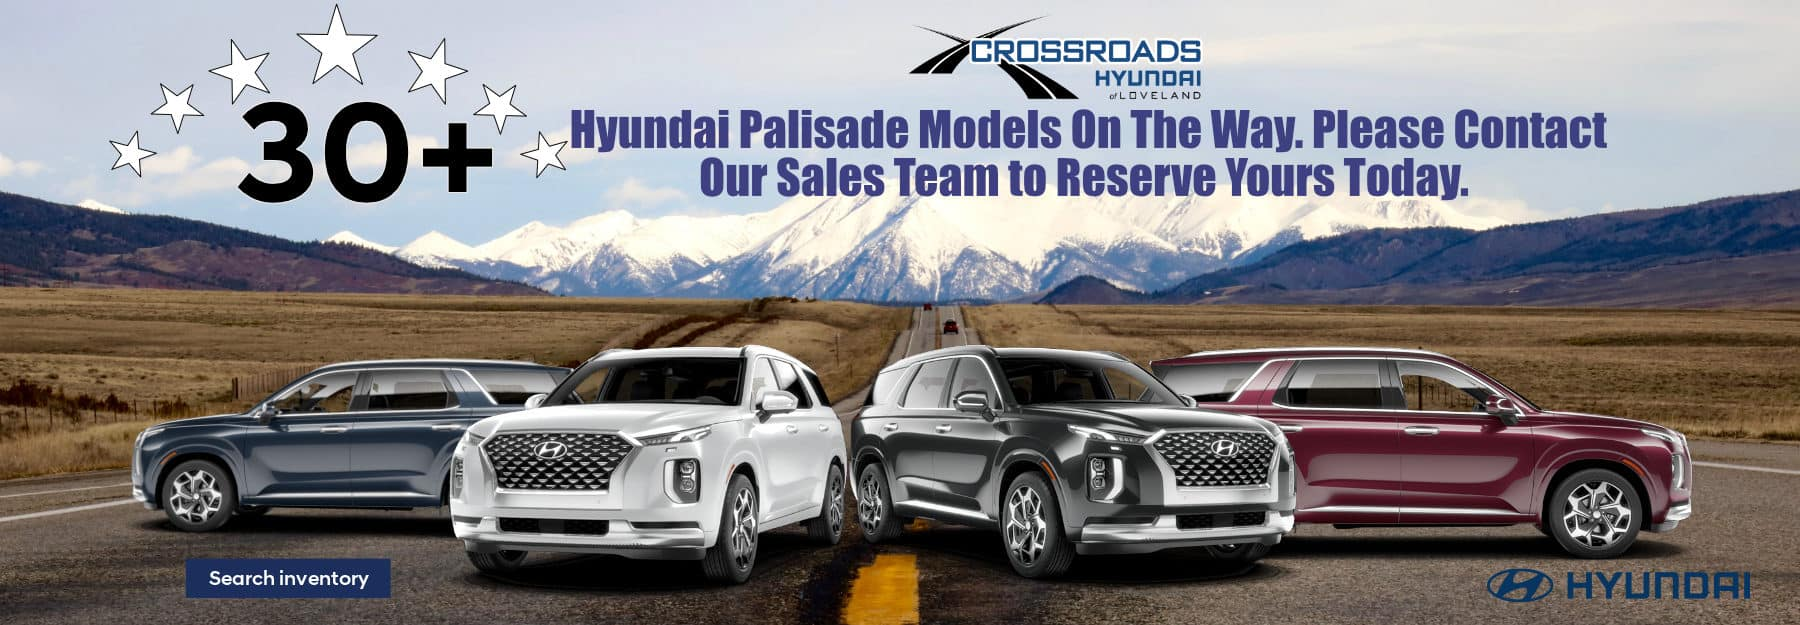 R_January_2021_Paisades_General_CROSSROADS_Hyundai